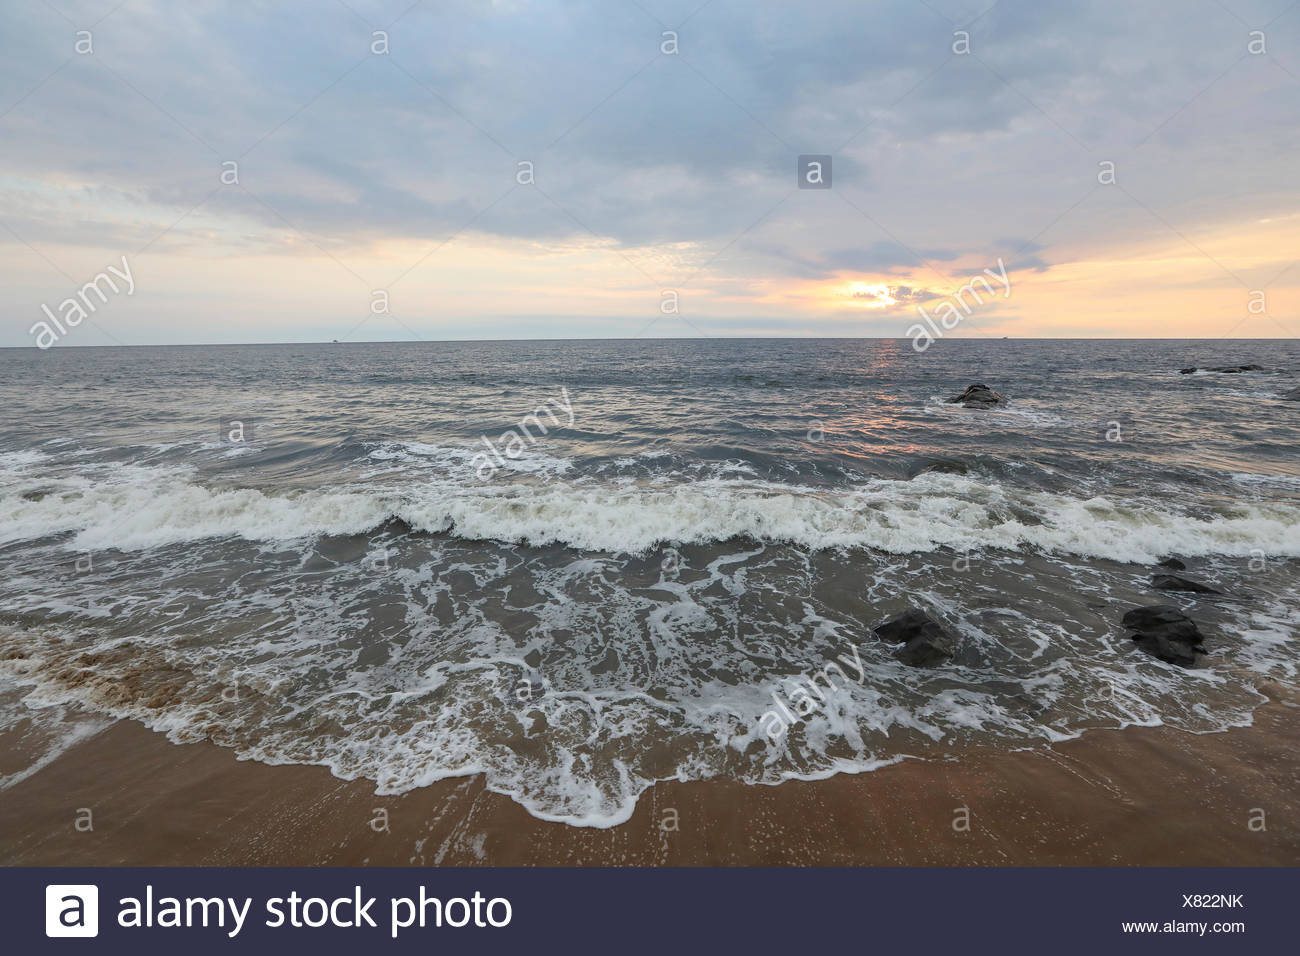 Waves wash up on the beach. - Stock Image